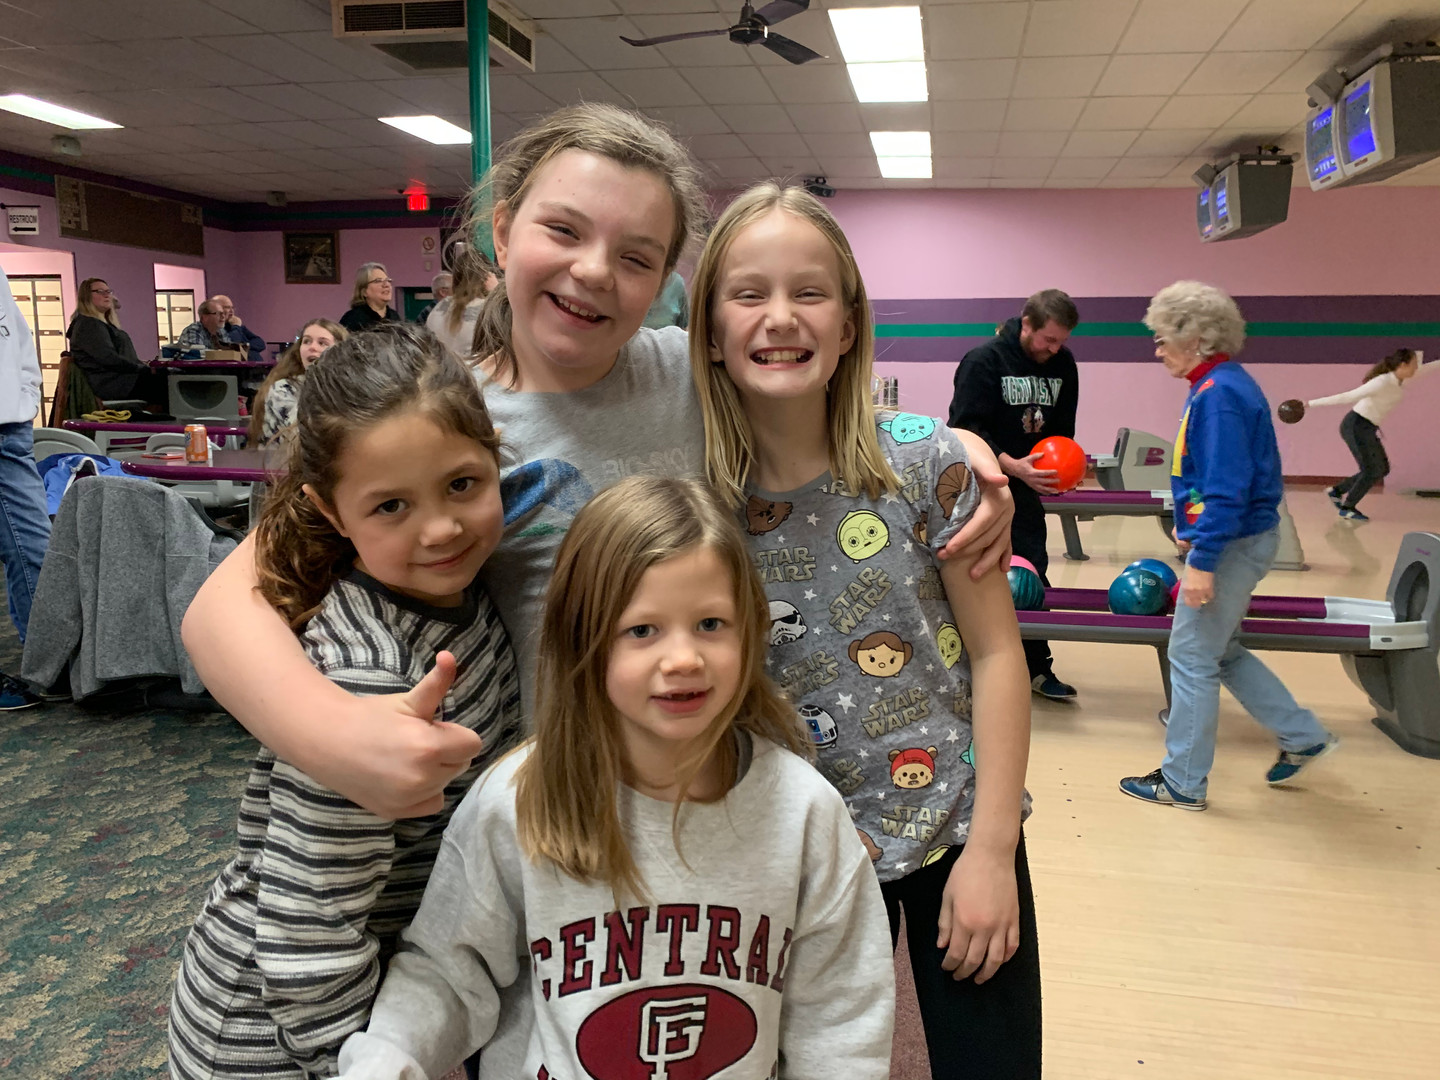 Family bowling event!